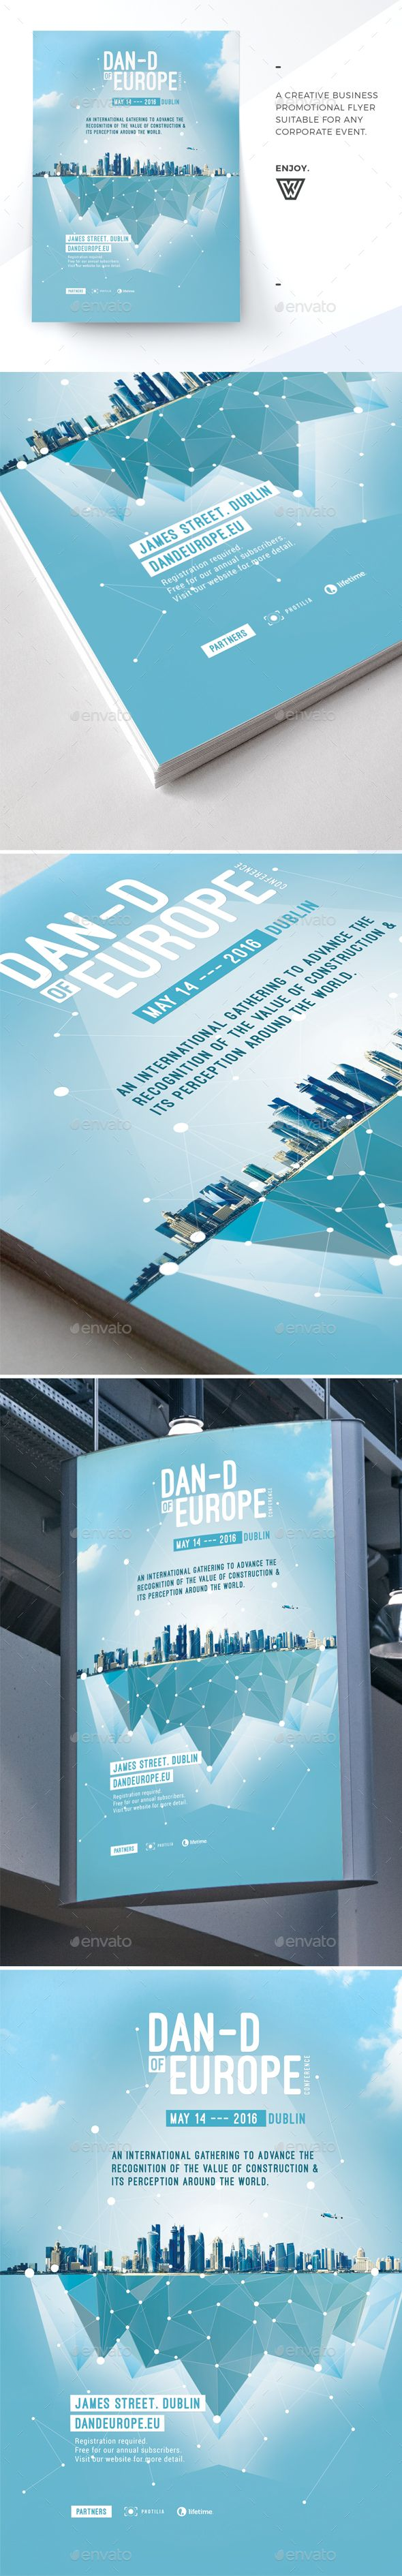 Business Conference Event Flyer Template Psd Download Here Http